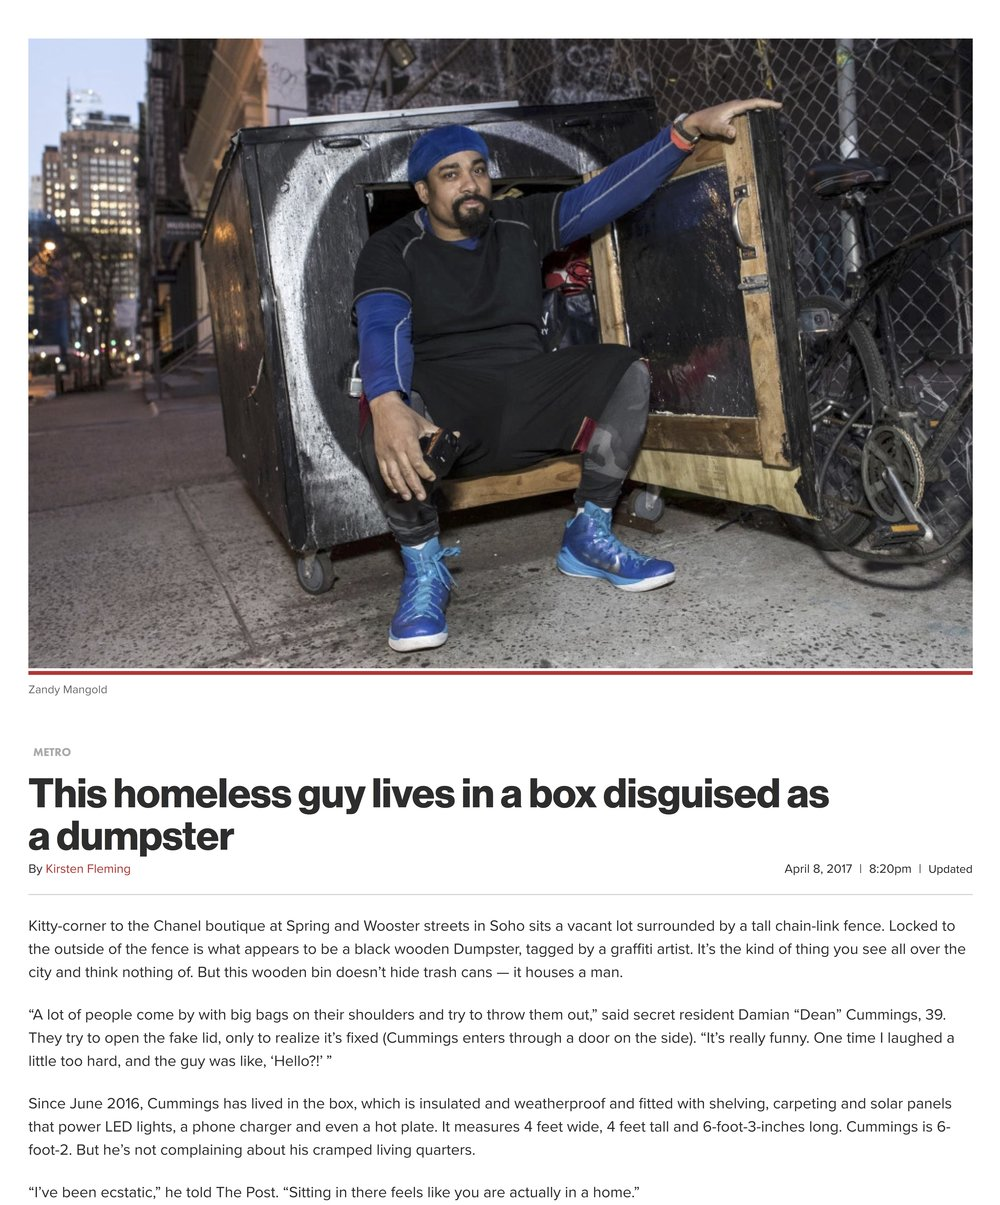 web This homeless guy lives in a box disguised as a dumpster | New York Post.jpg